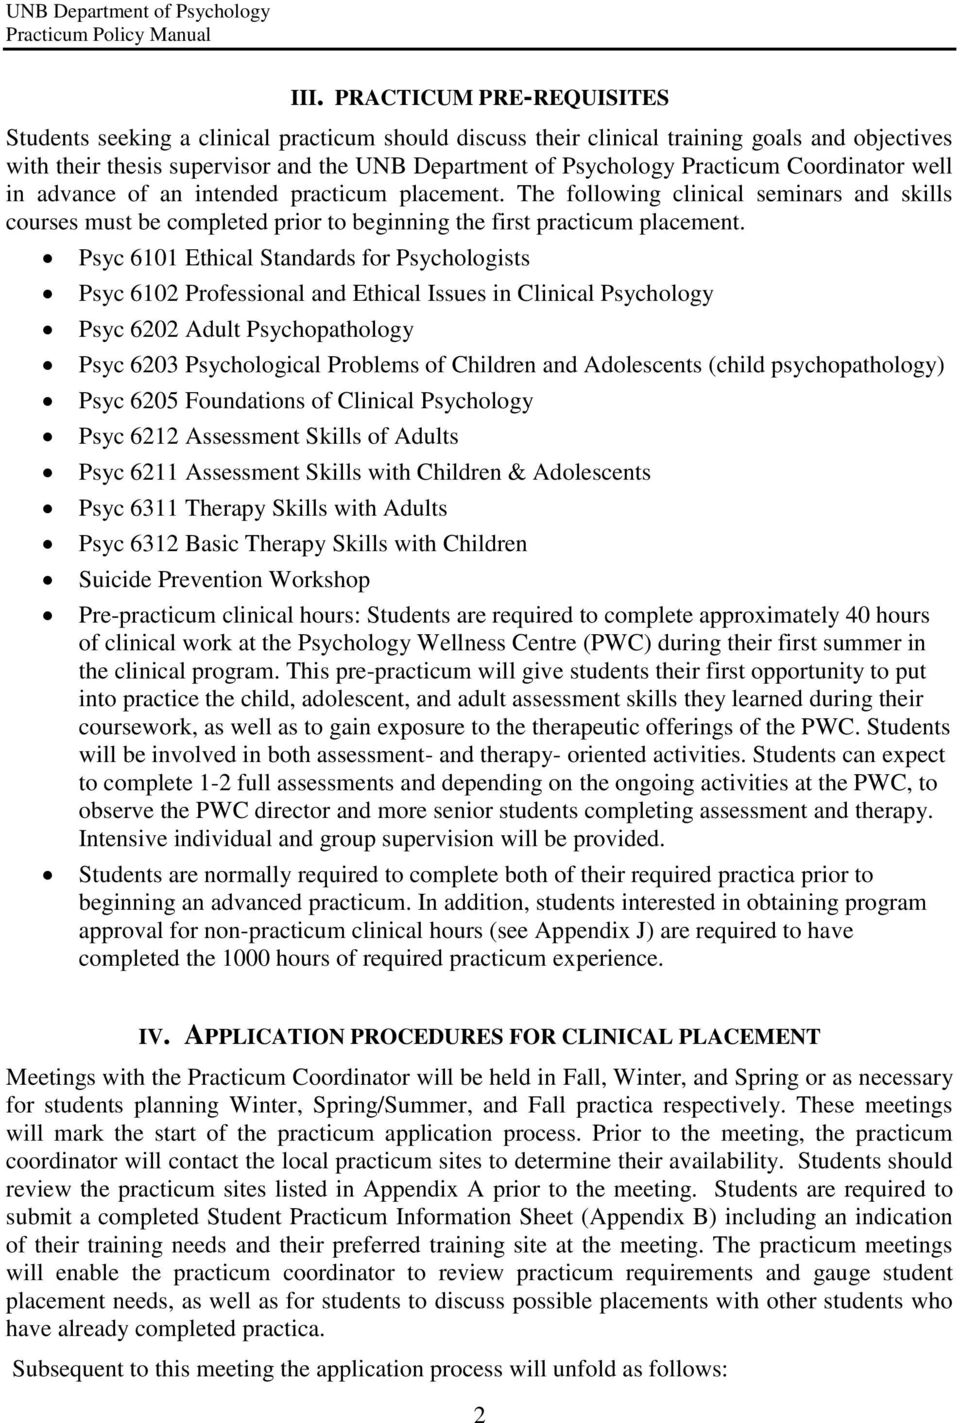 Psyc 6101 Ethical Standards for Psychologists Psyc 6102 Professional and Ethical Issues in Clinical Psychology Psyc 6202 Adult Psychopathology Psyc 6203 Psychological Problems of Children and